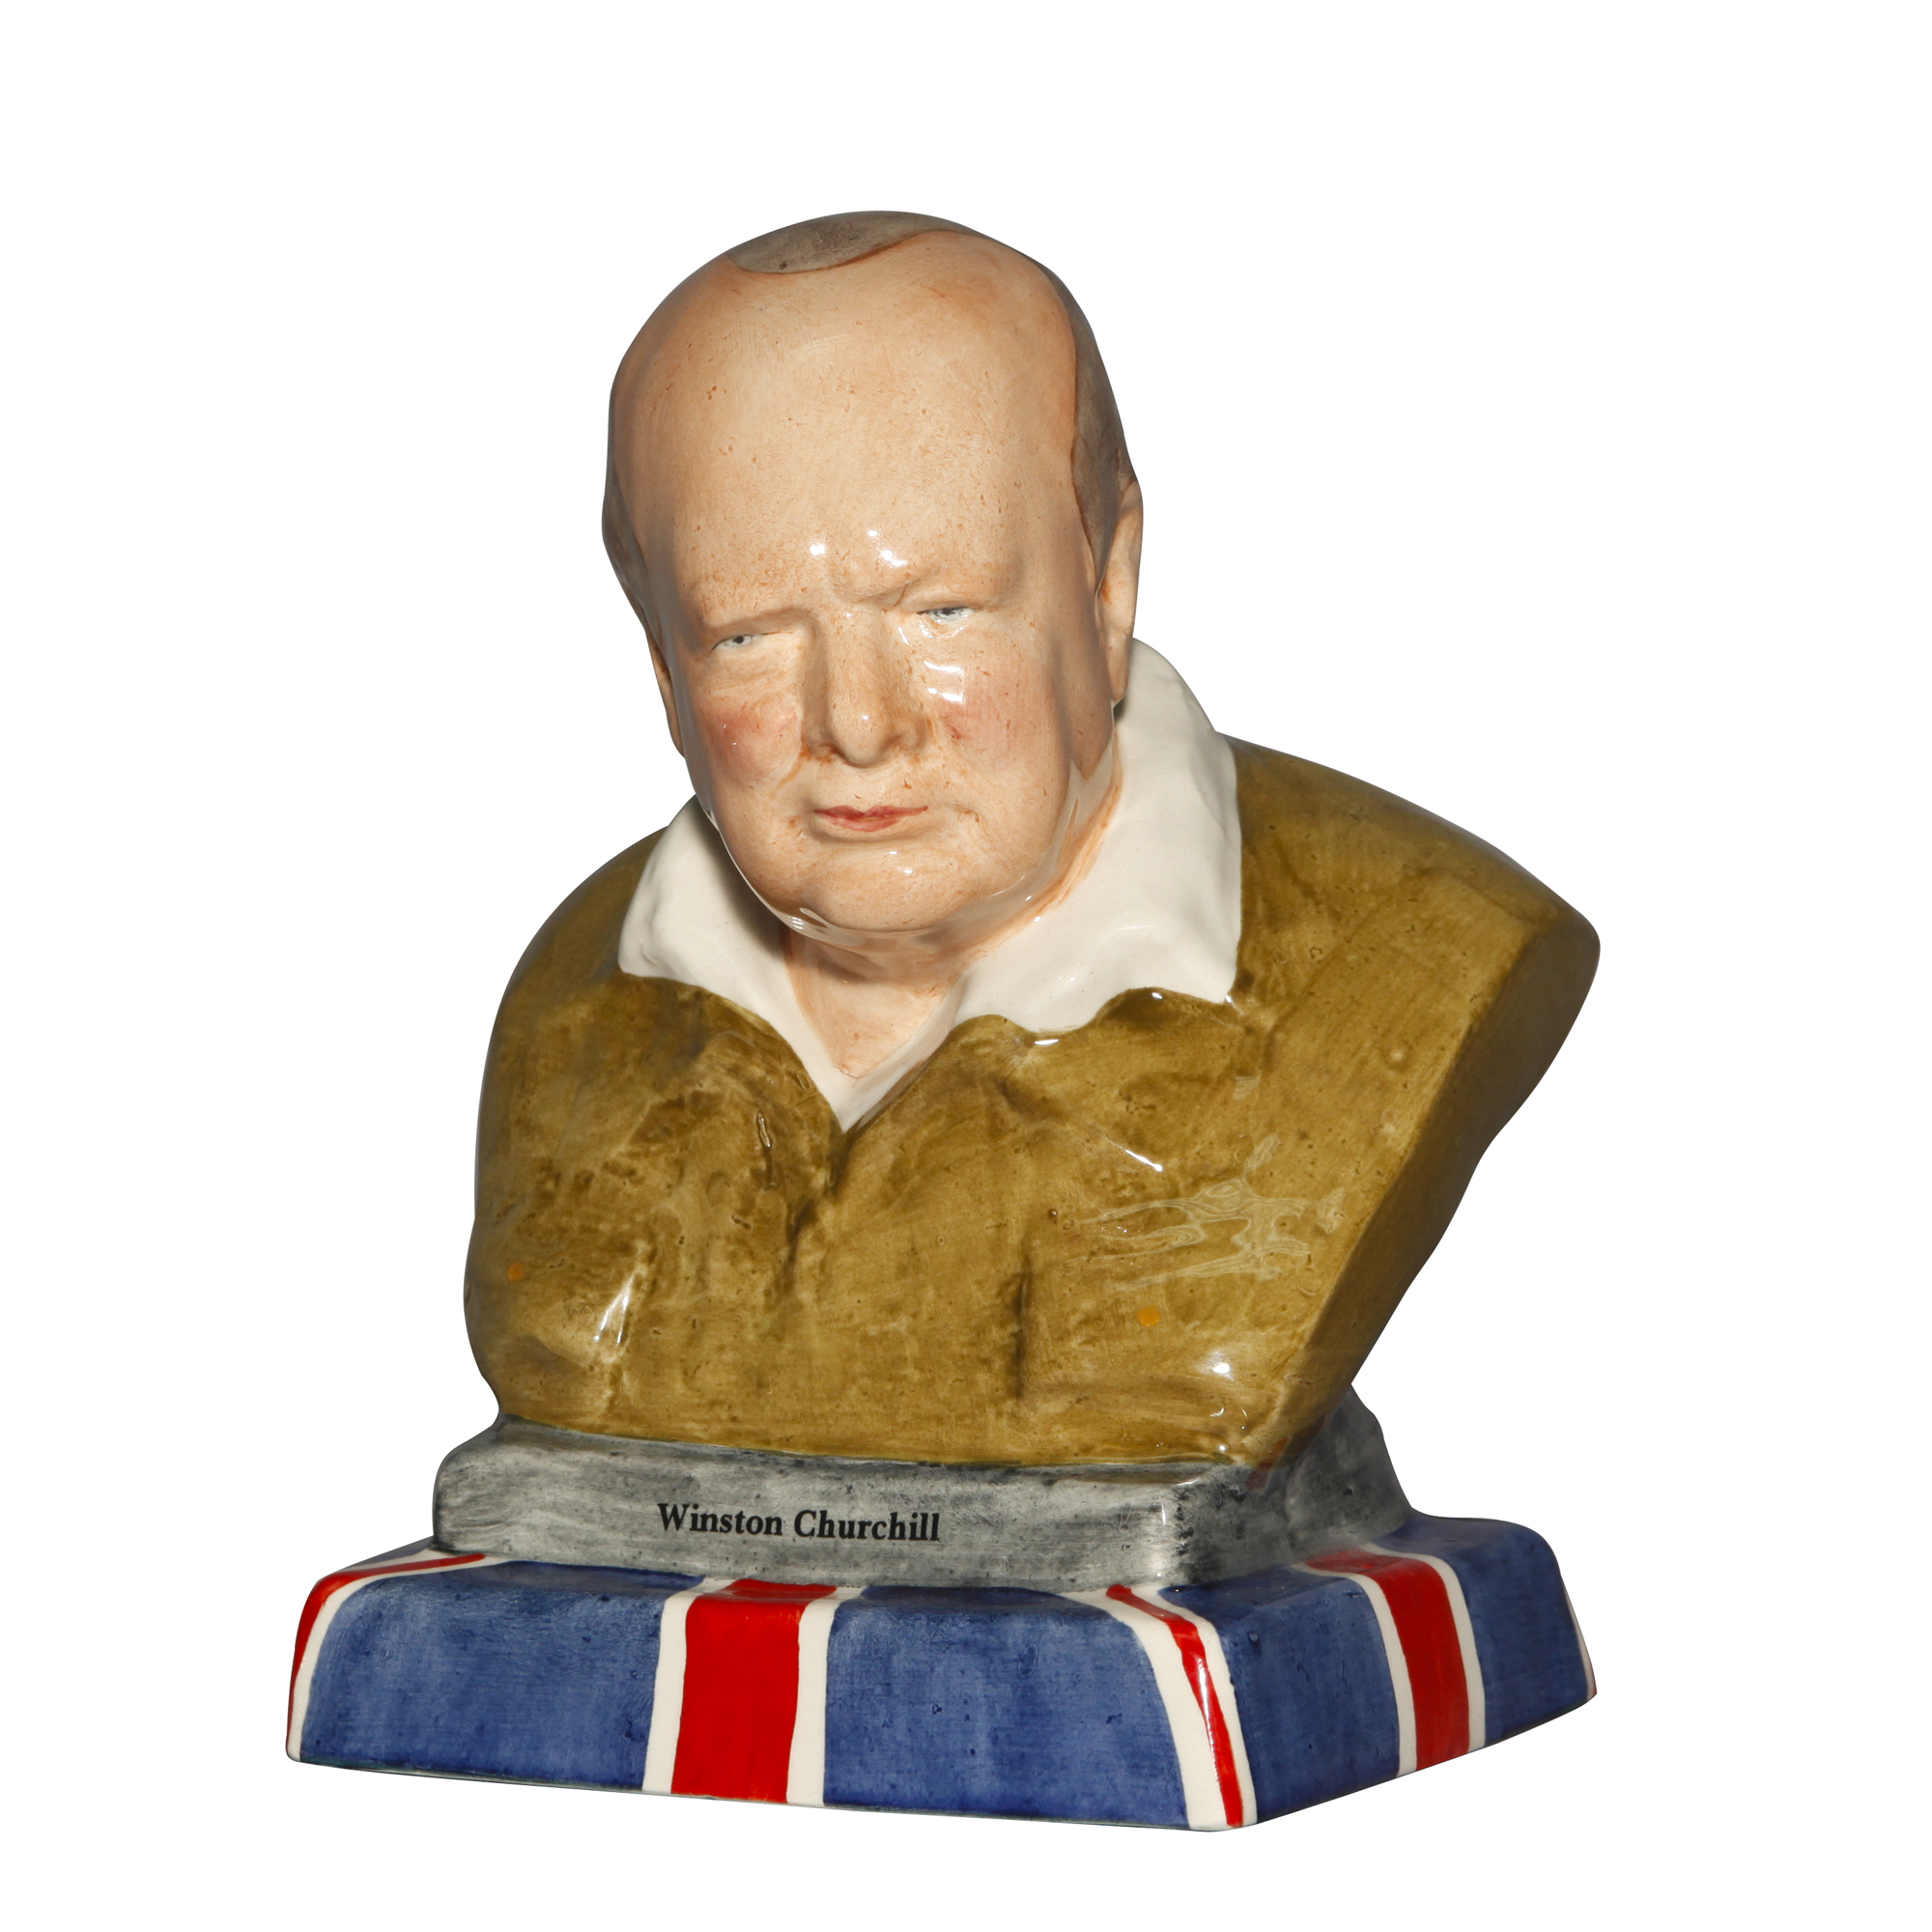 Winston Churchill Large Bust - Bairstow Manor Collectables